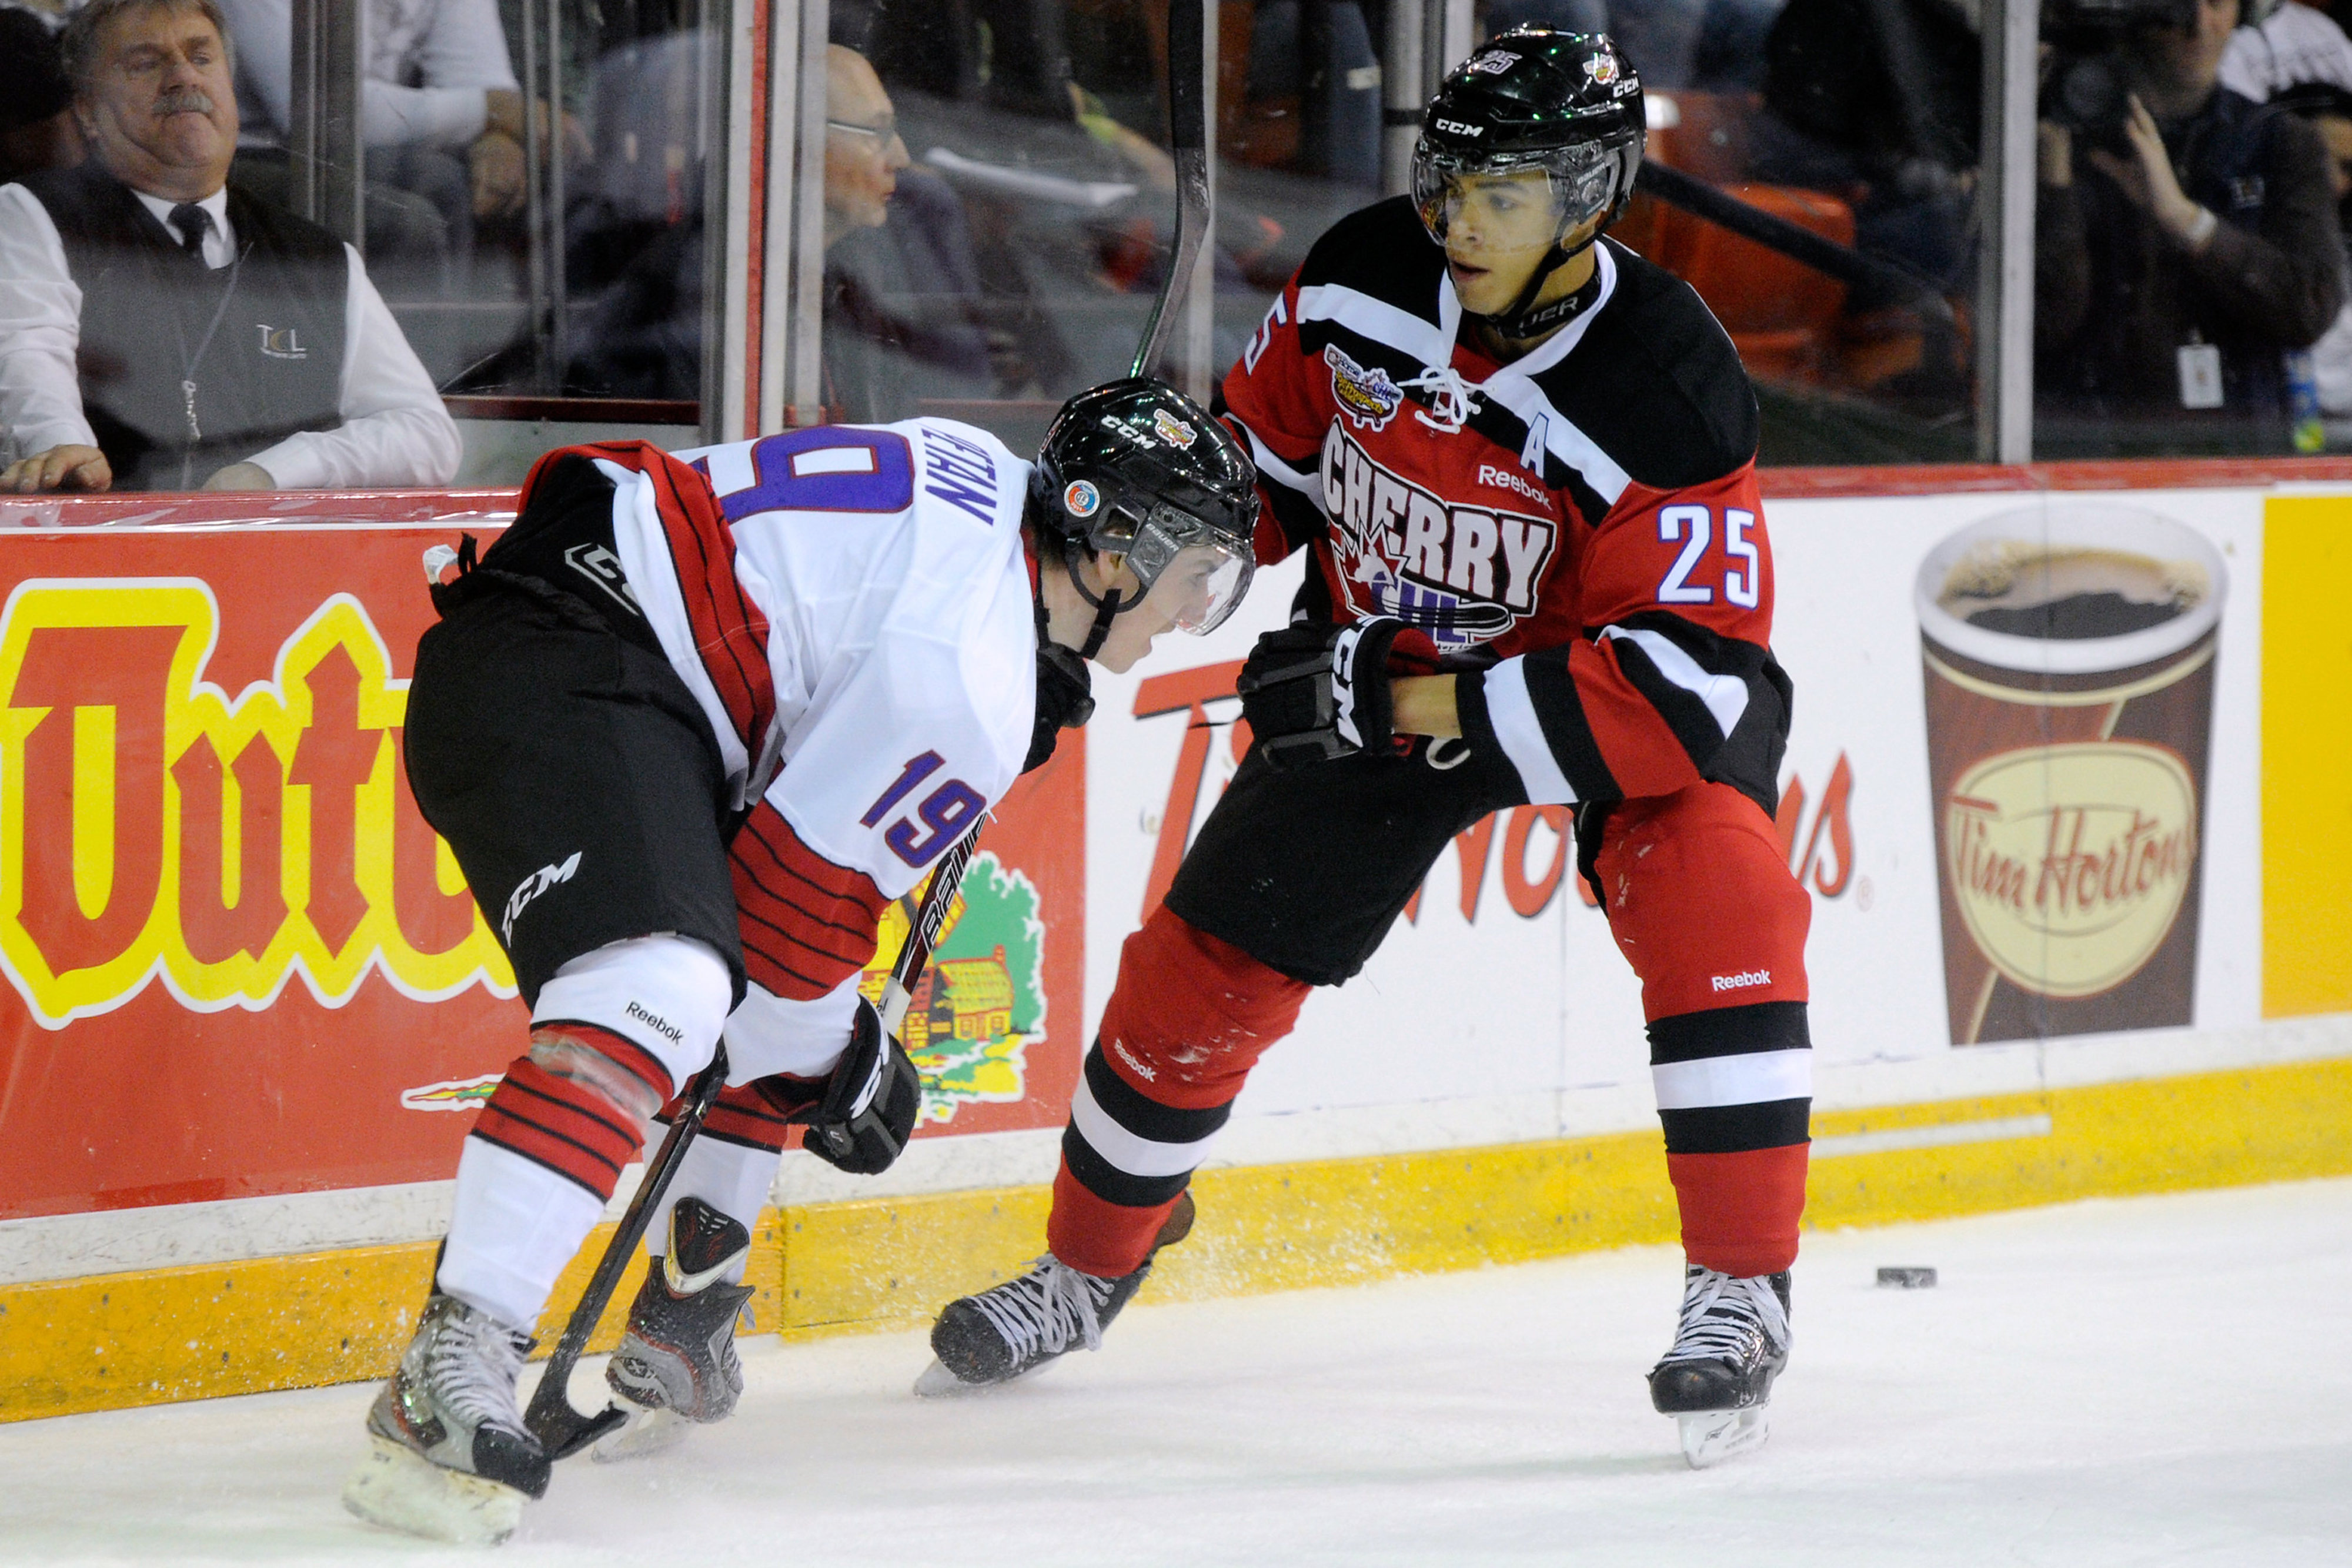 Darnell Nurse taking part in the CHL Top Prospect Game